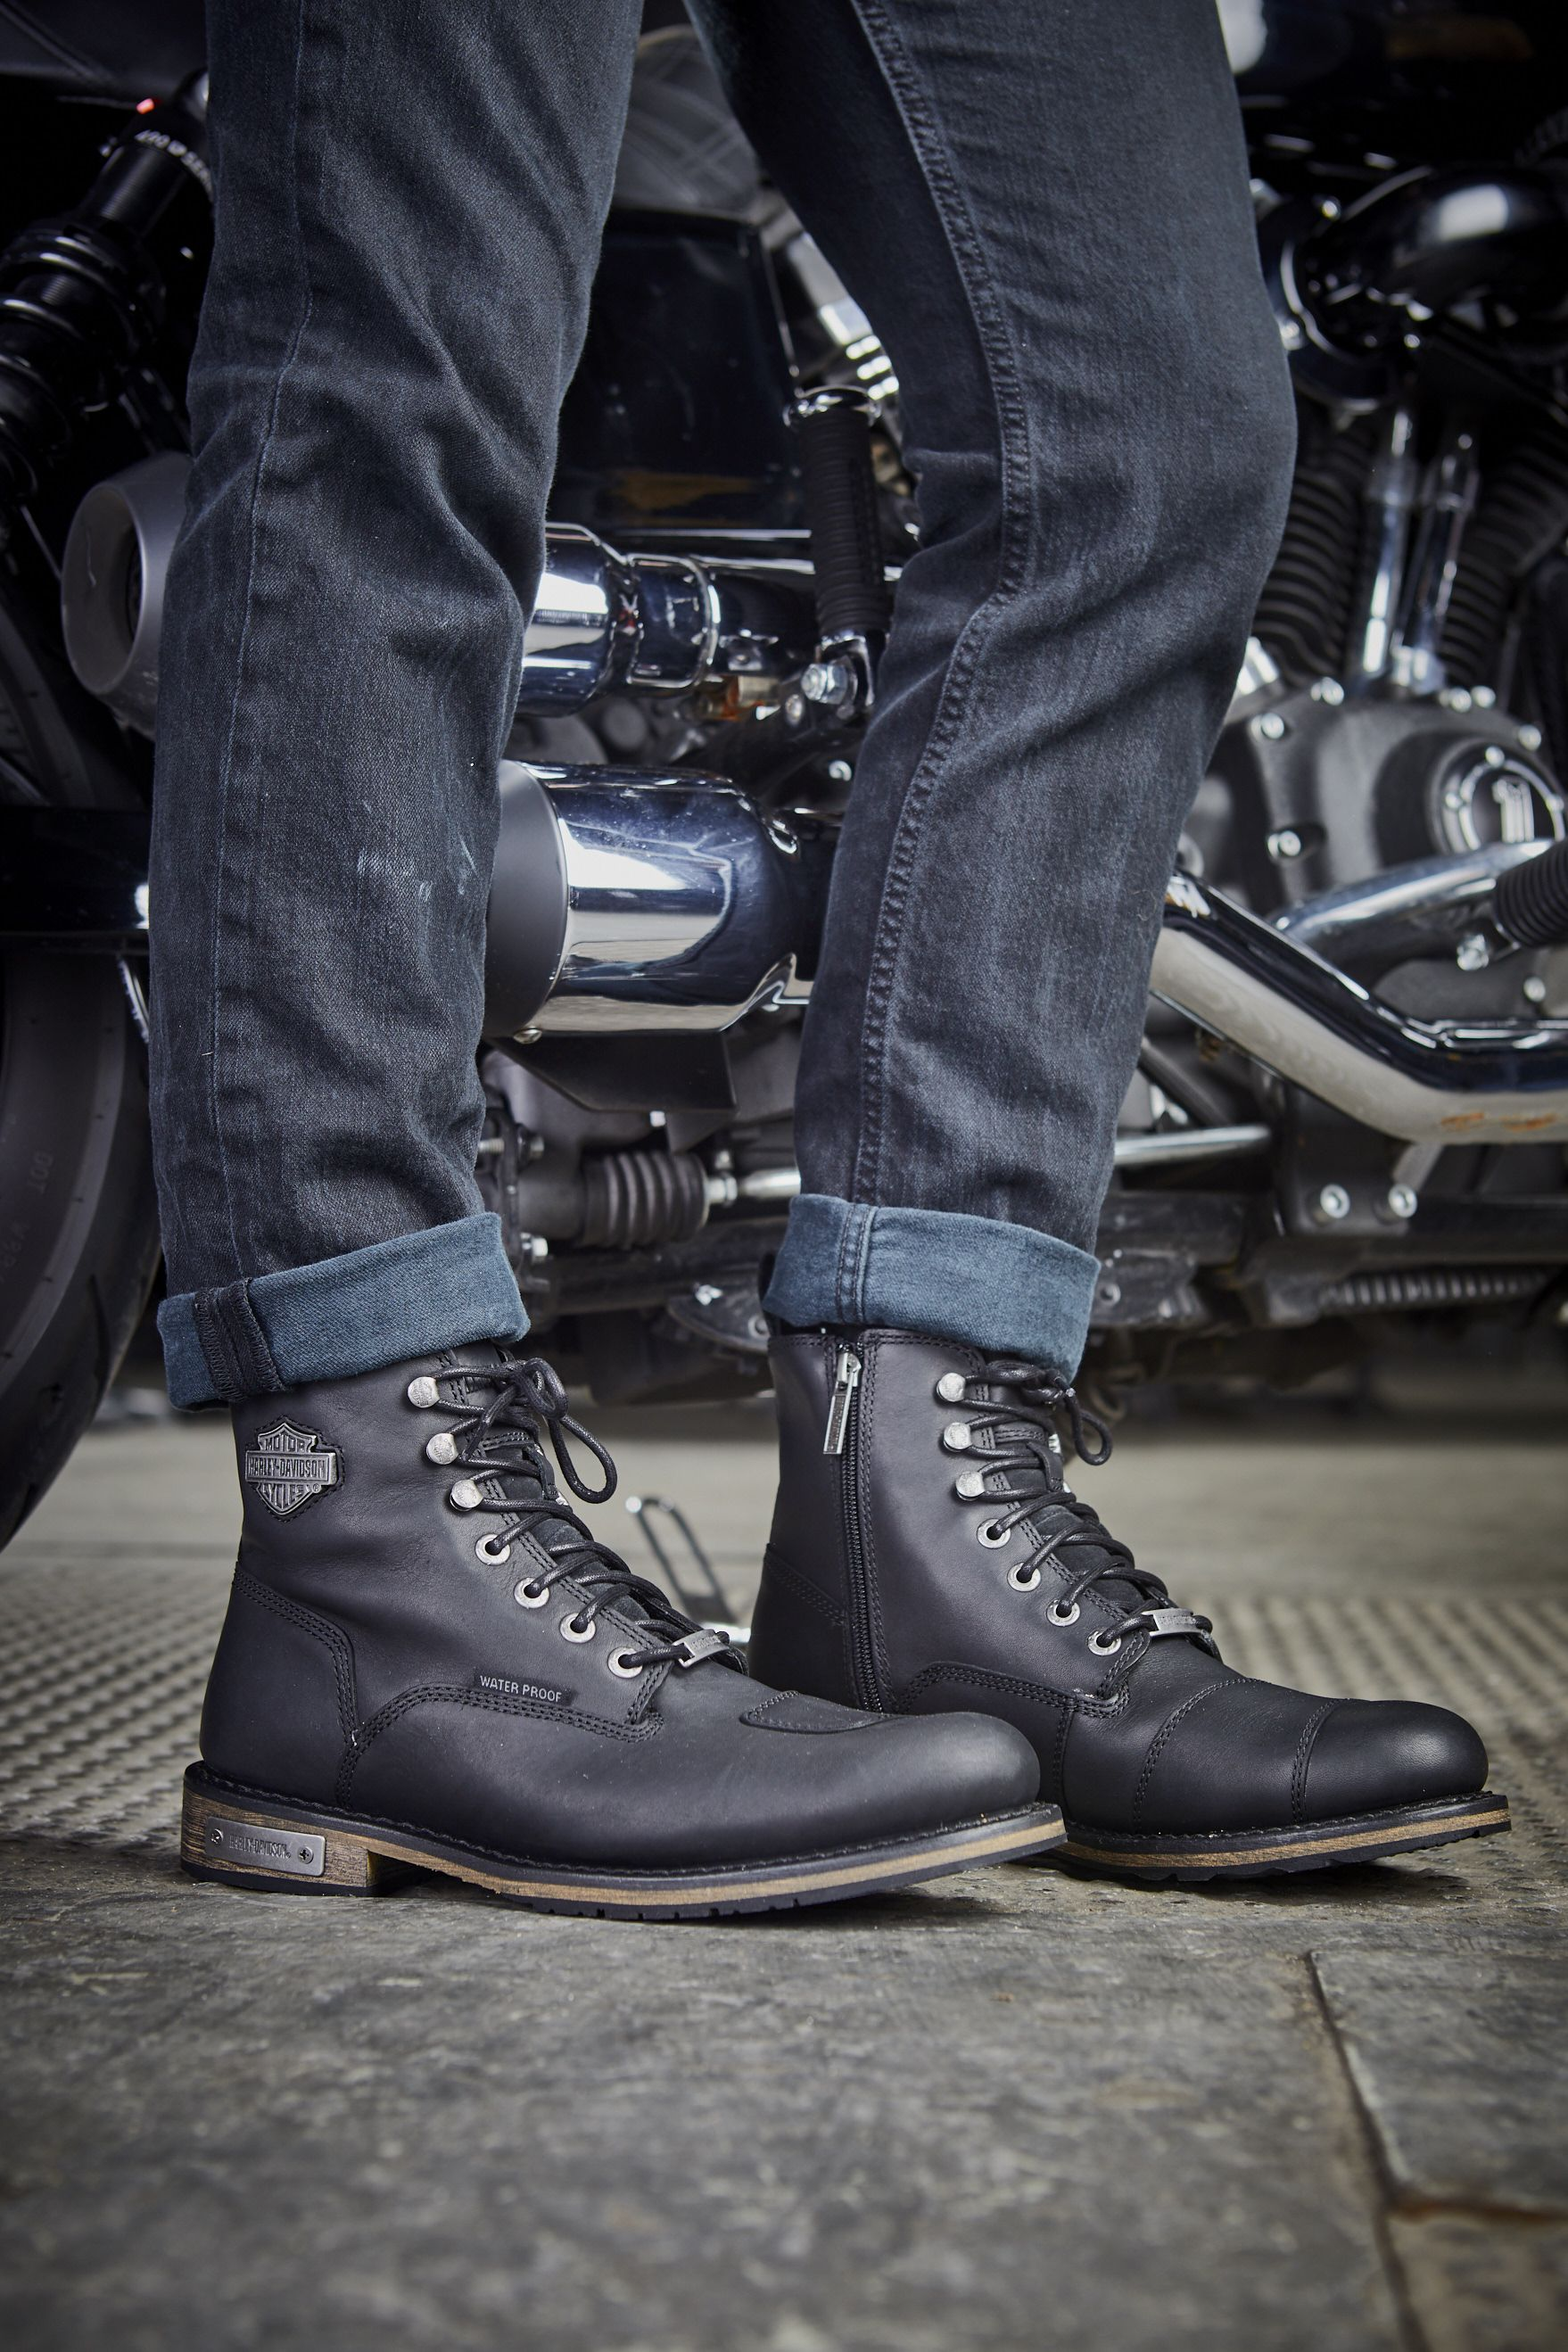 4b6167d5fc8 Men's Clancy Boot | Men's Dealer Exclusives in 2019 | Boots, Harley ...